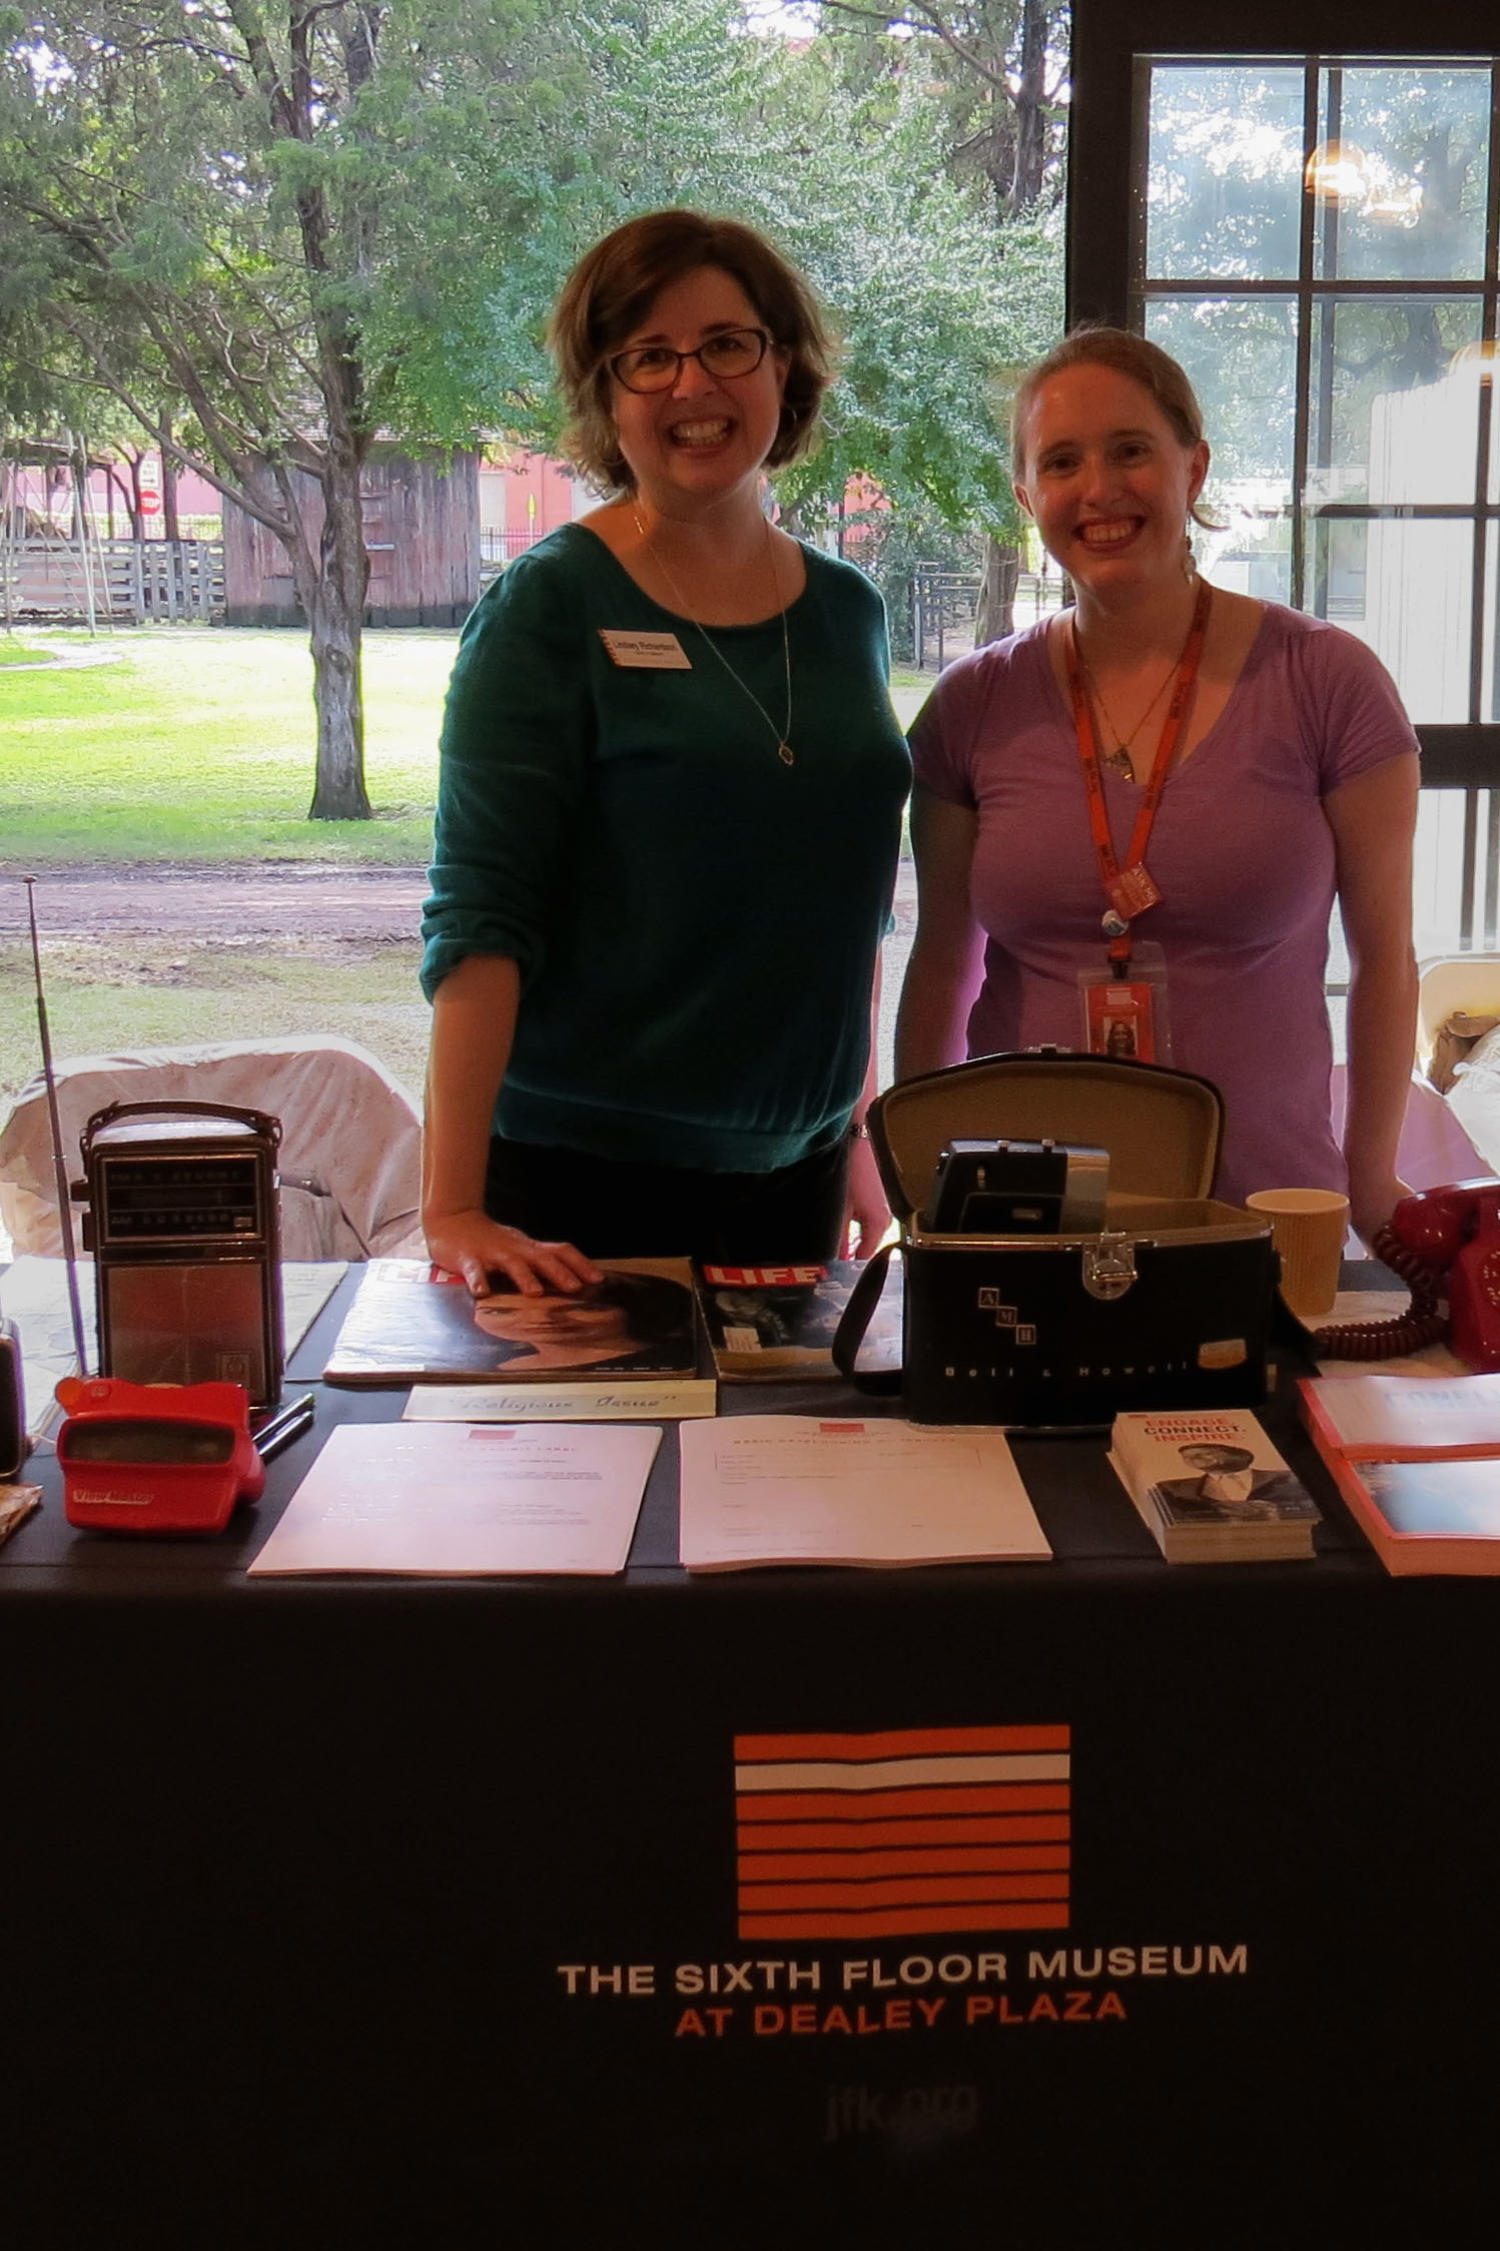 [Lindsey and Stephanie at Sixth Floor Museum table], Photograph of Lindsey Richardson (green), the Curator of Collections, and Stephanie Allen-Givens (purple), the Collections and Exhibits Manager, standing behind the Sixth Floor Museum display table. A visitor is standing in front of them and on the table are radios, a purse, a telephone, LIFE Magazine, other artifacts from the time-period and several paper handouts on the table for visitors.,